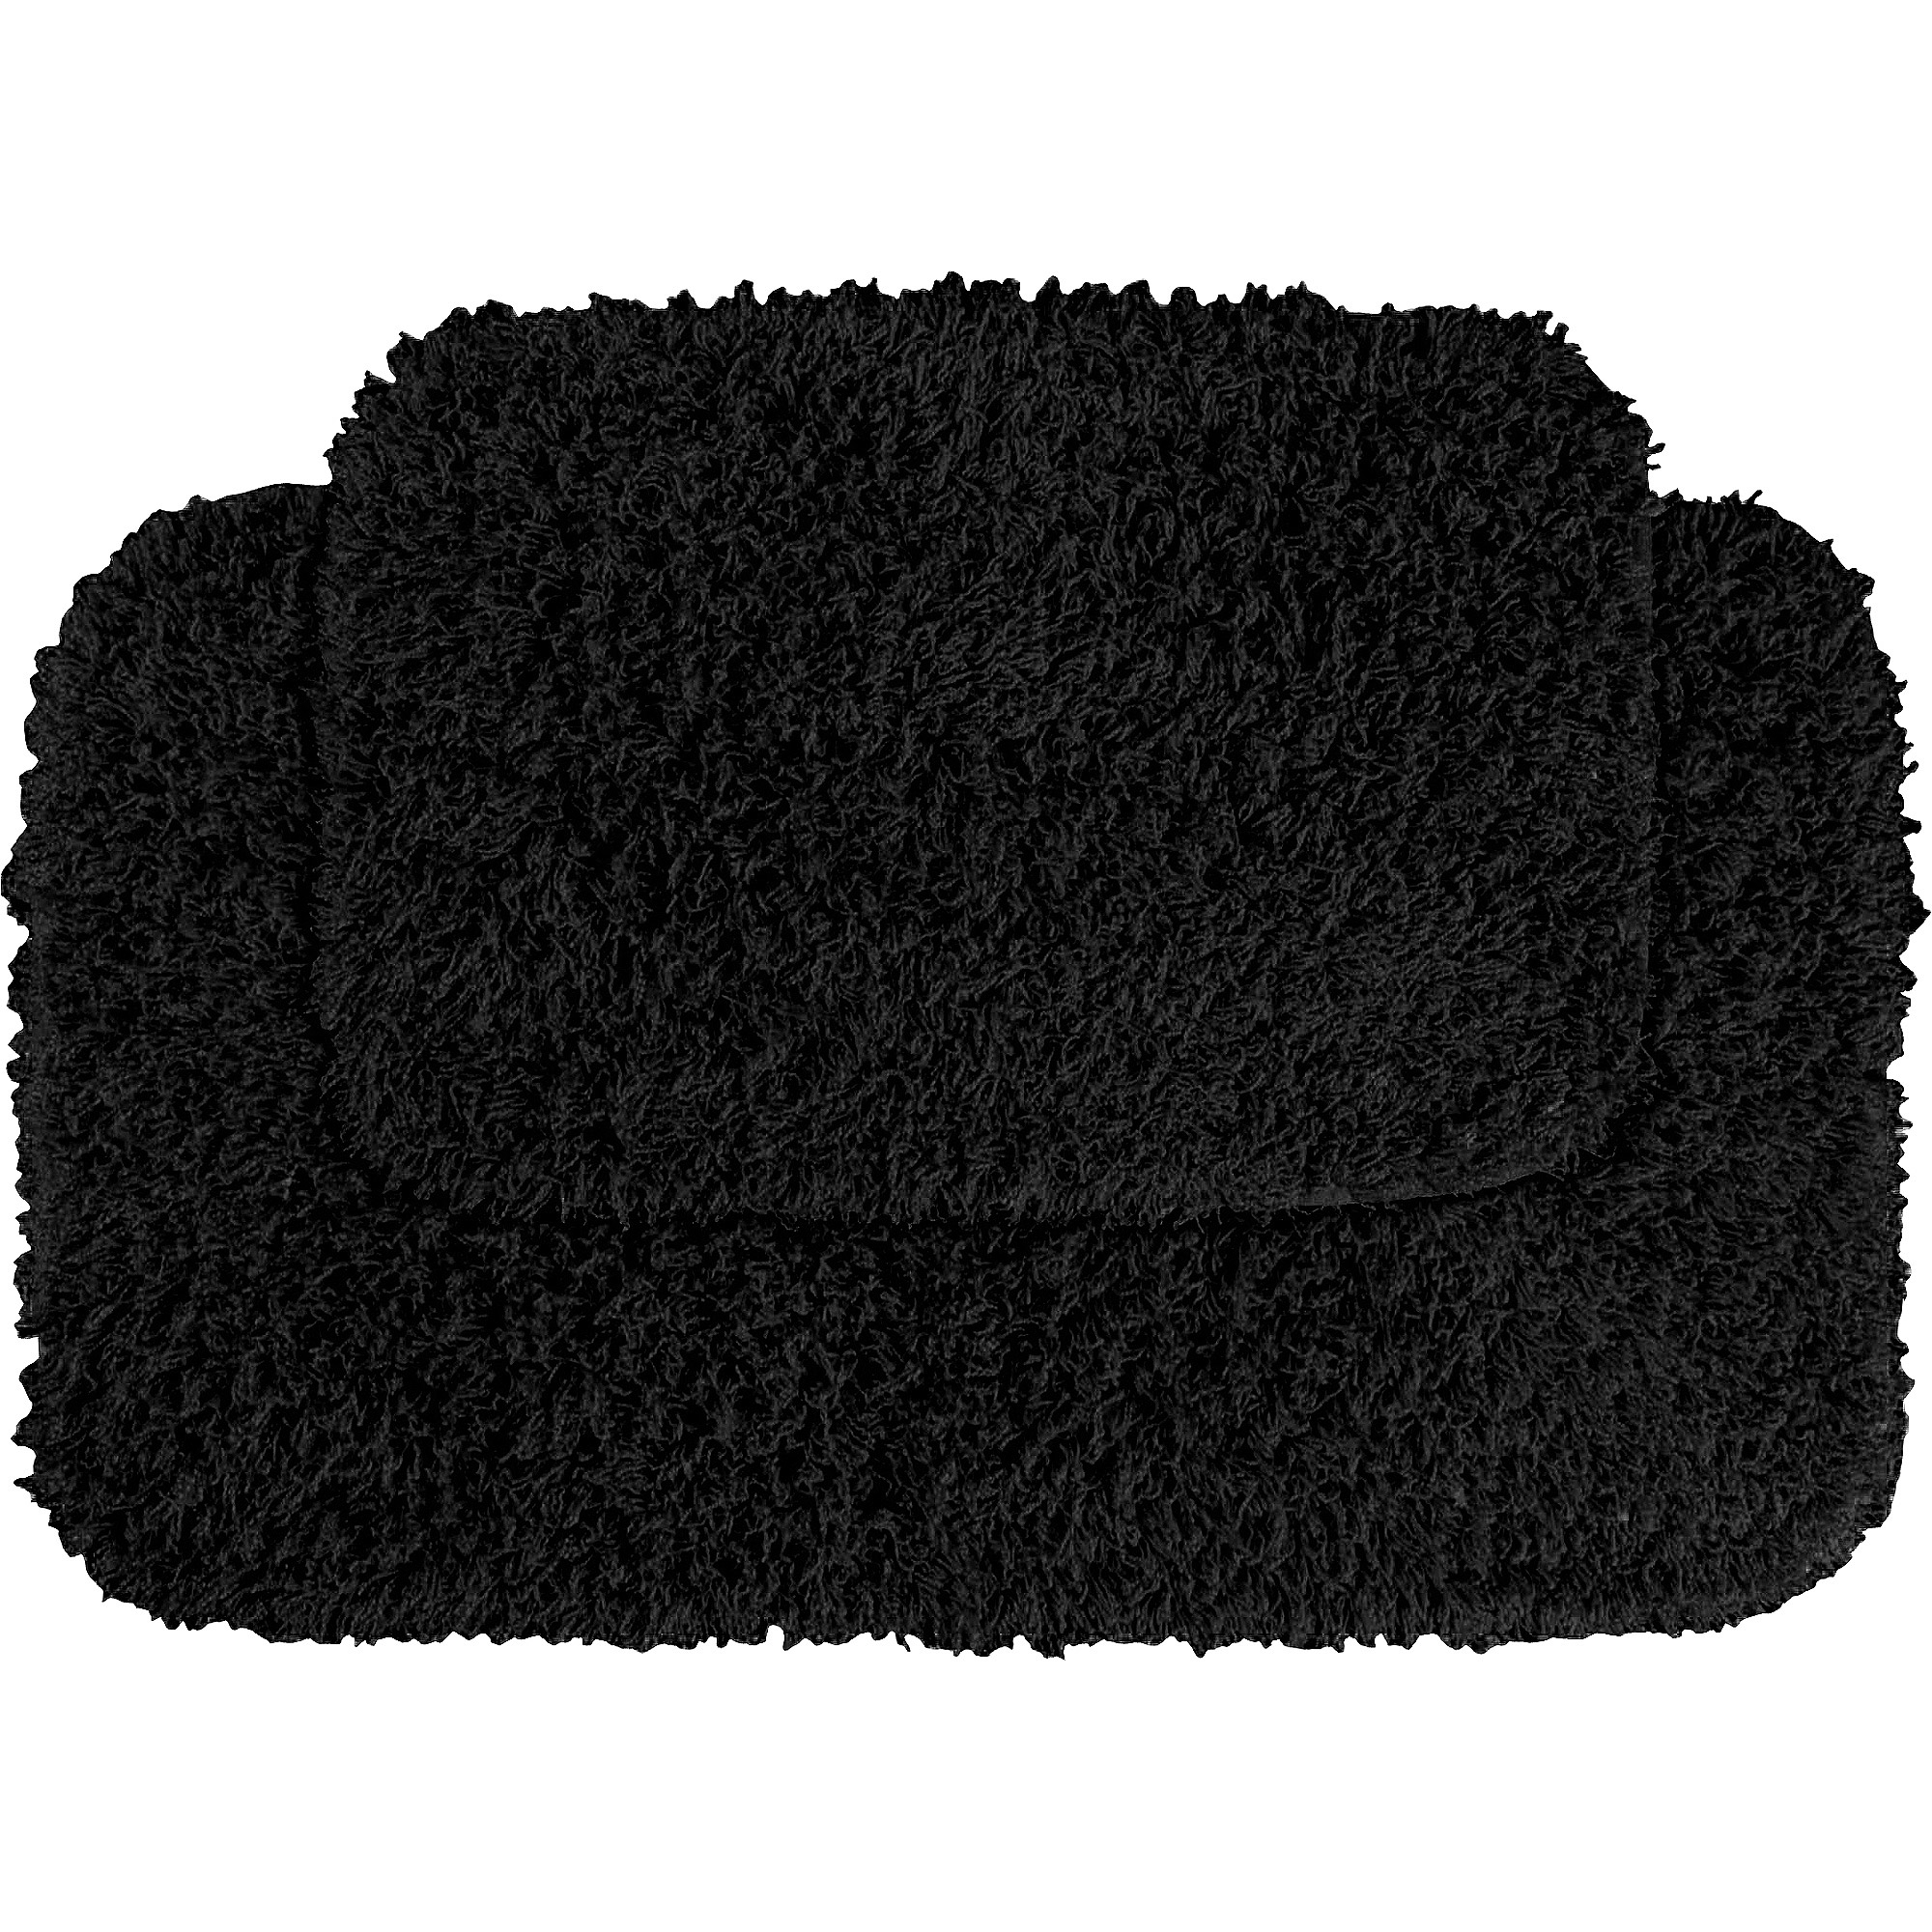 Permalink to Black Bathroom Mat Set